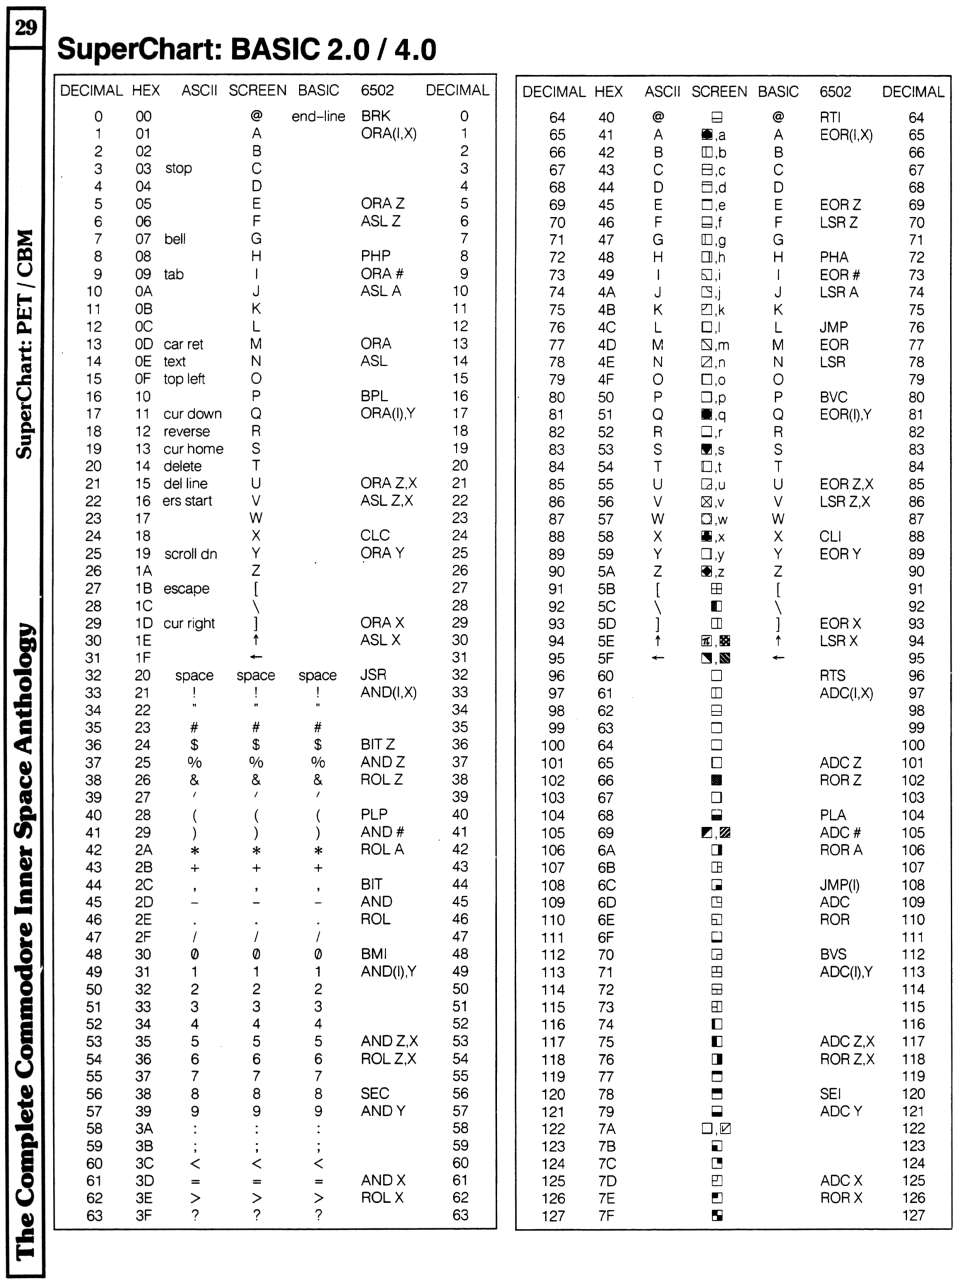 [960�1285 Superchart BASIC 2.0/4.0 (PET/CBM, 1 of 2)]